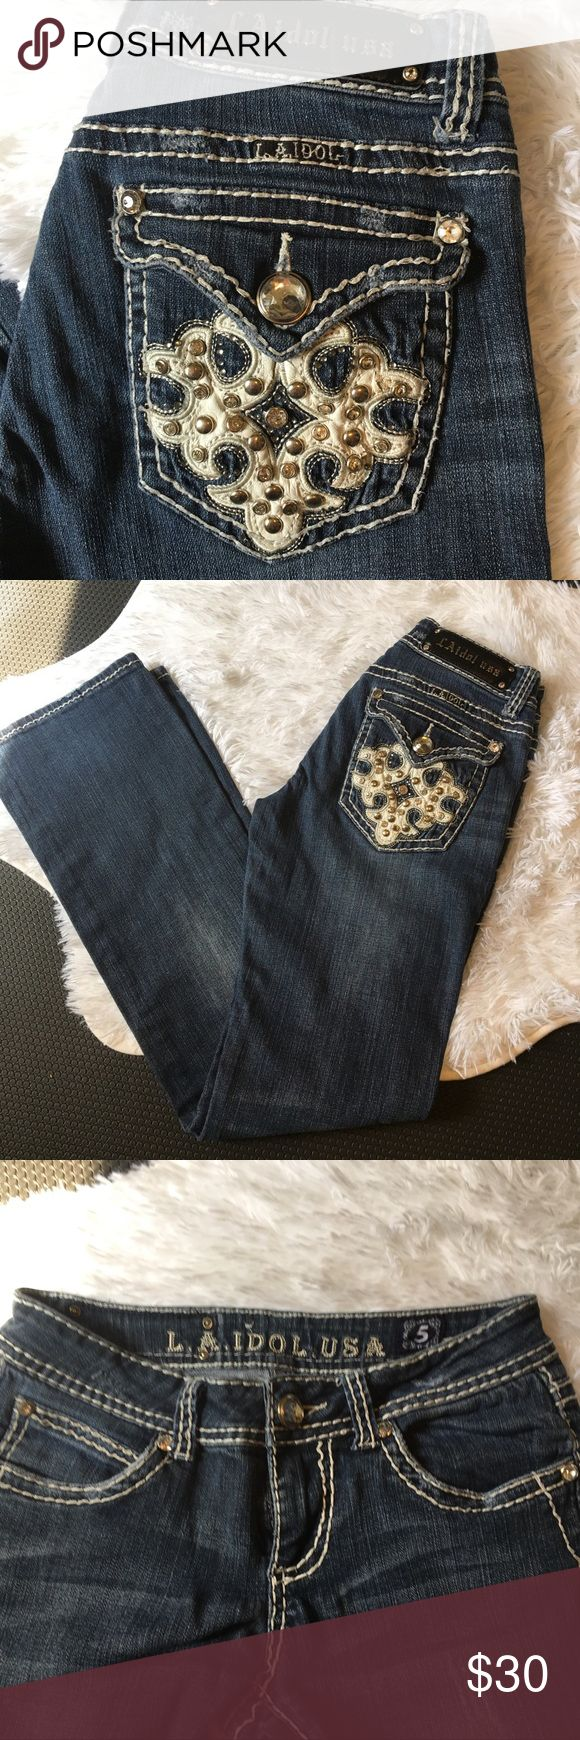 """⭐️LA Idols Jeans⭐️ 🌟Nice pocket design and fit! Like """"Miss Me"""" brand. I always got compliments wearing these on the bike! In great condition 👍 LA Idol Jeans Boot Cut"""